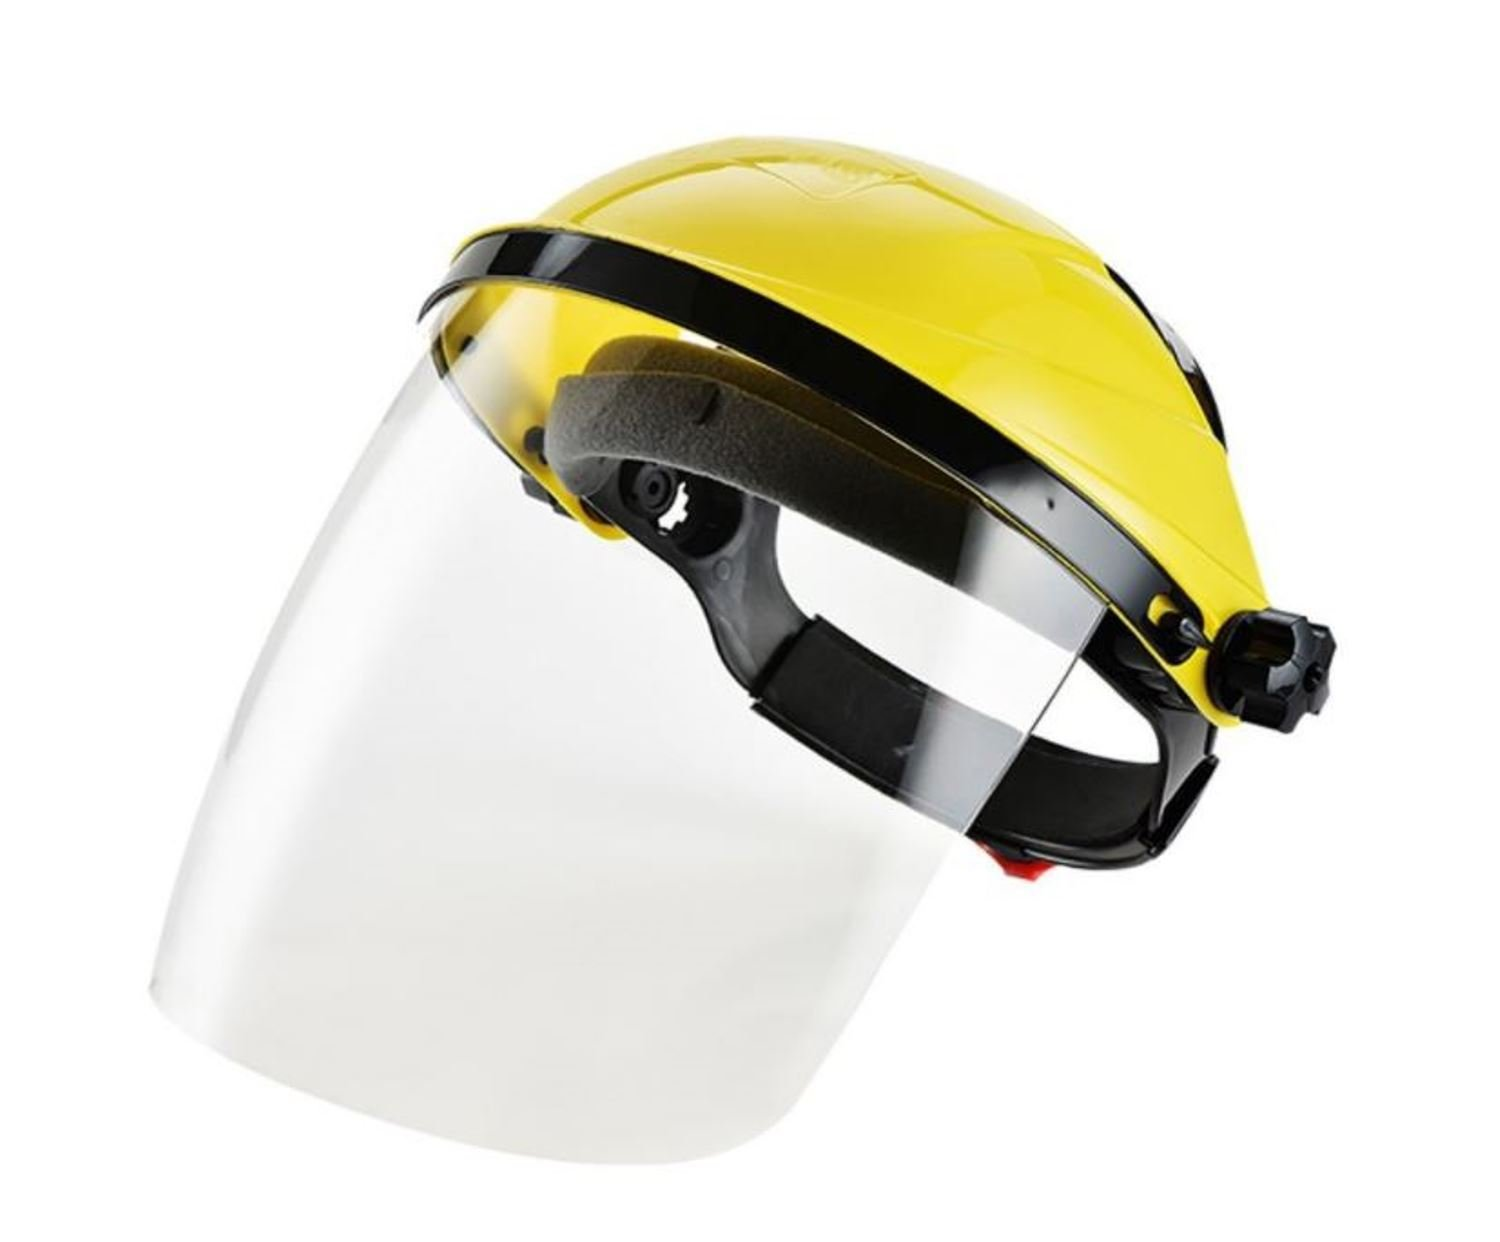 Safety Works Adjustable Headgear Face shield with Visor Mask Clear Face and Head Coverage Polycarbonate Used for - Light Construction, General Manufacturing, Cutting Metal, Cutting Wood (TL-1021)